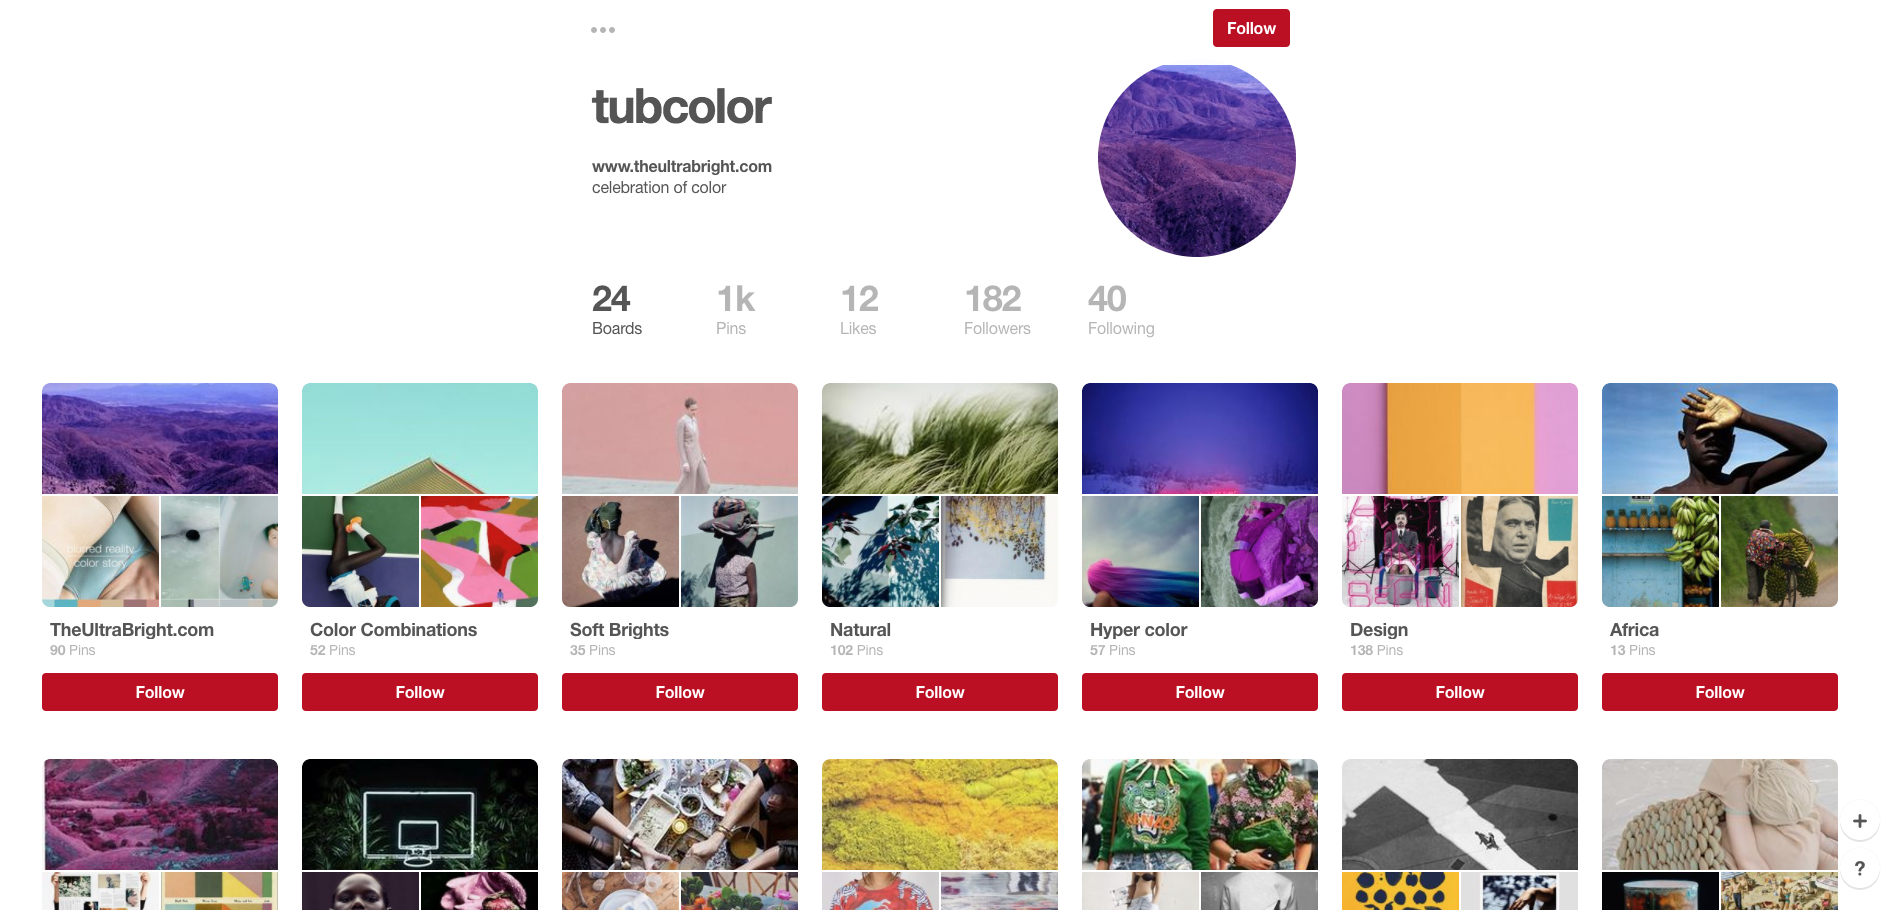 tubcolor-colour-design-inspiration